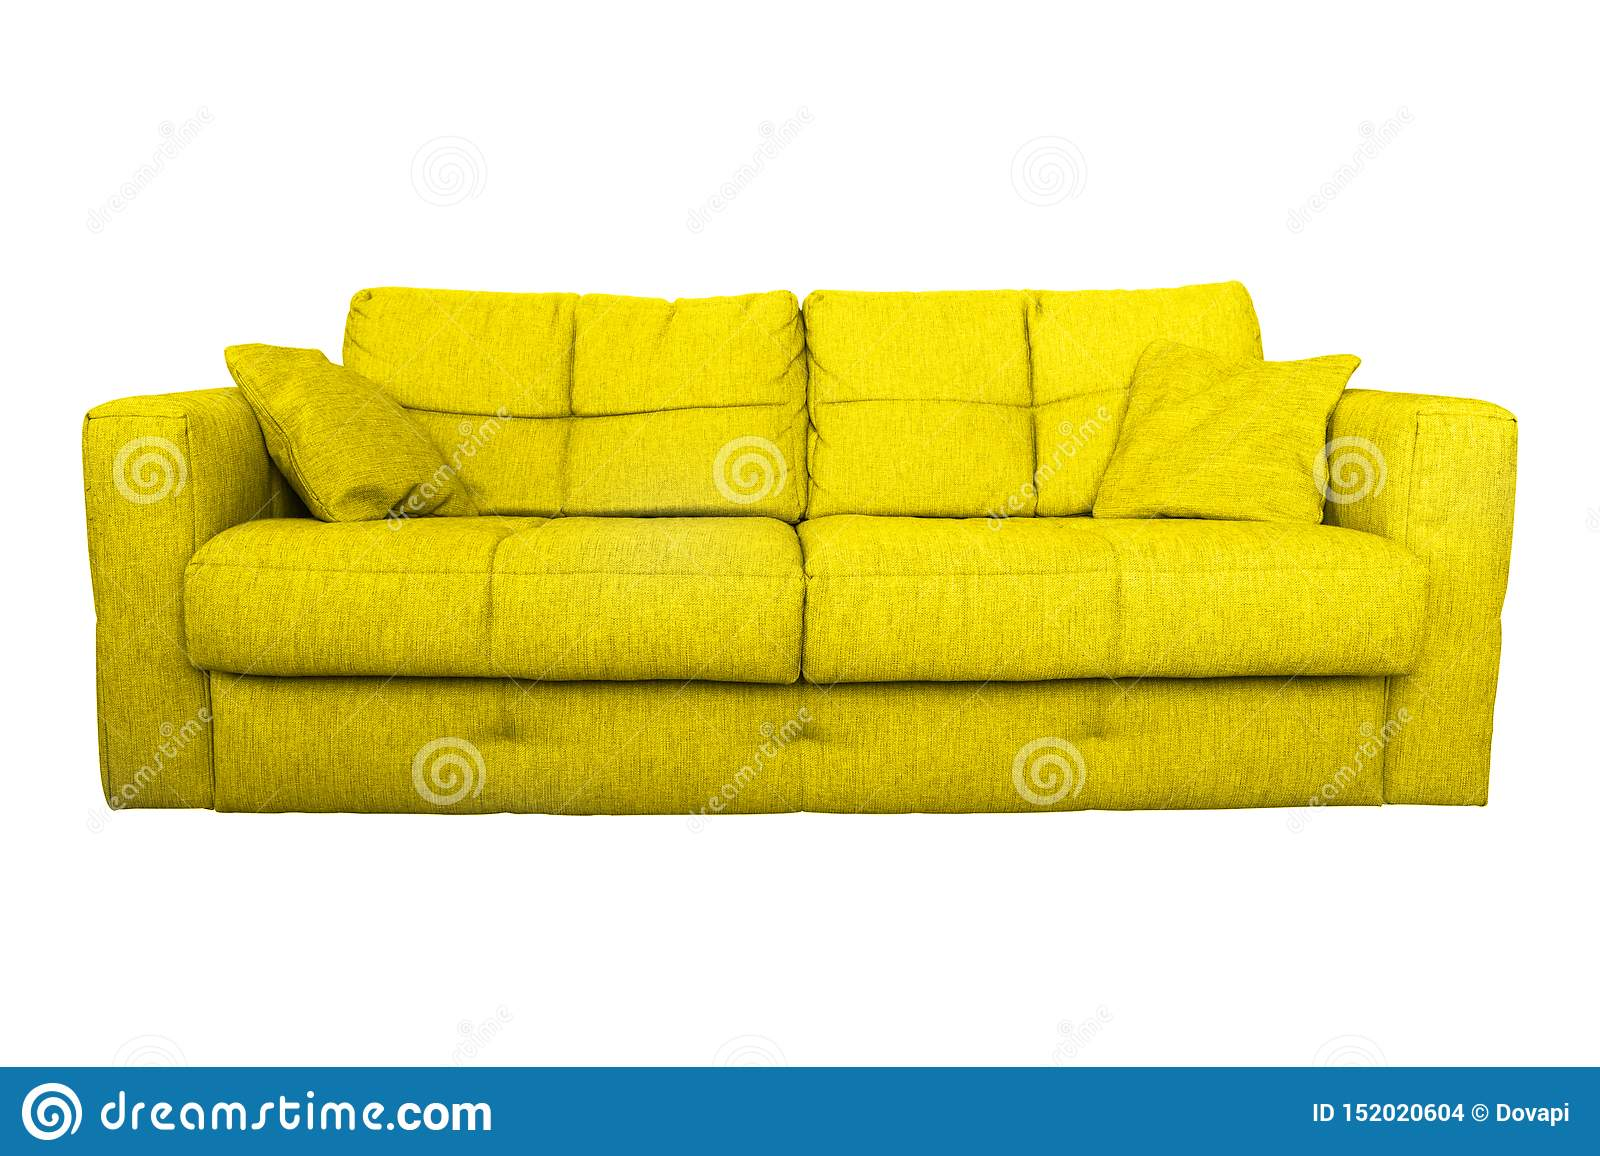 Modern Yellow Sofa Or Couch Furniture Stock Photo - Image of ...